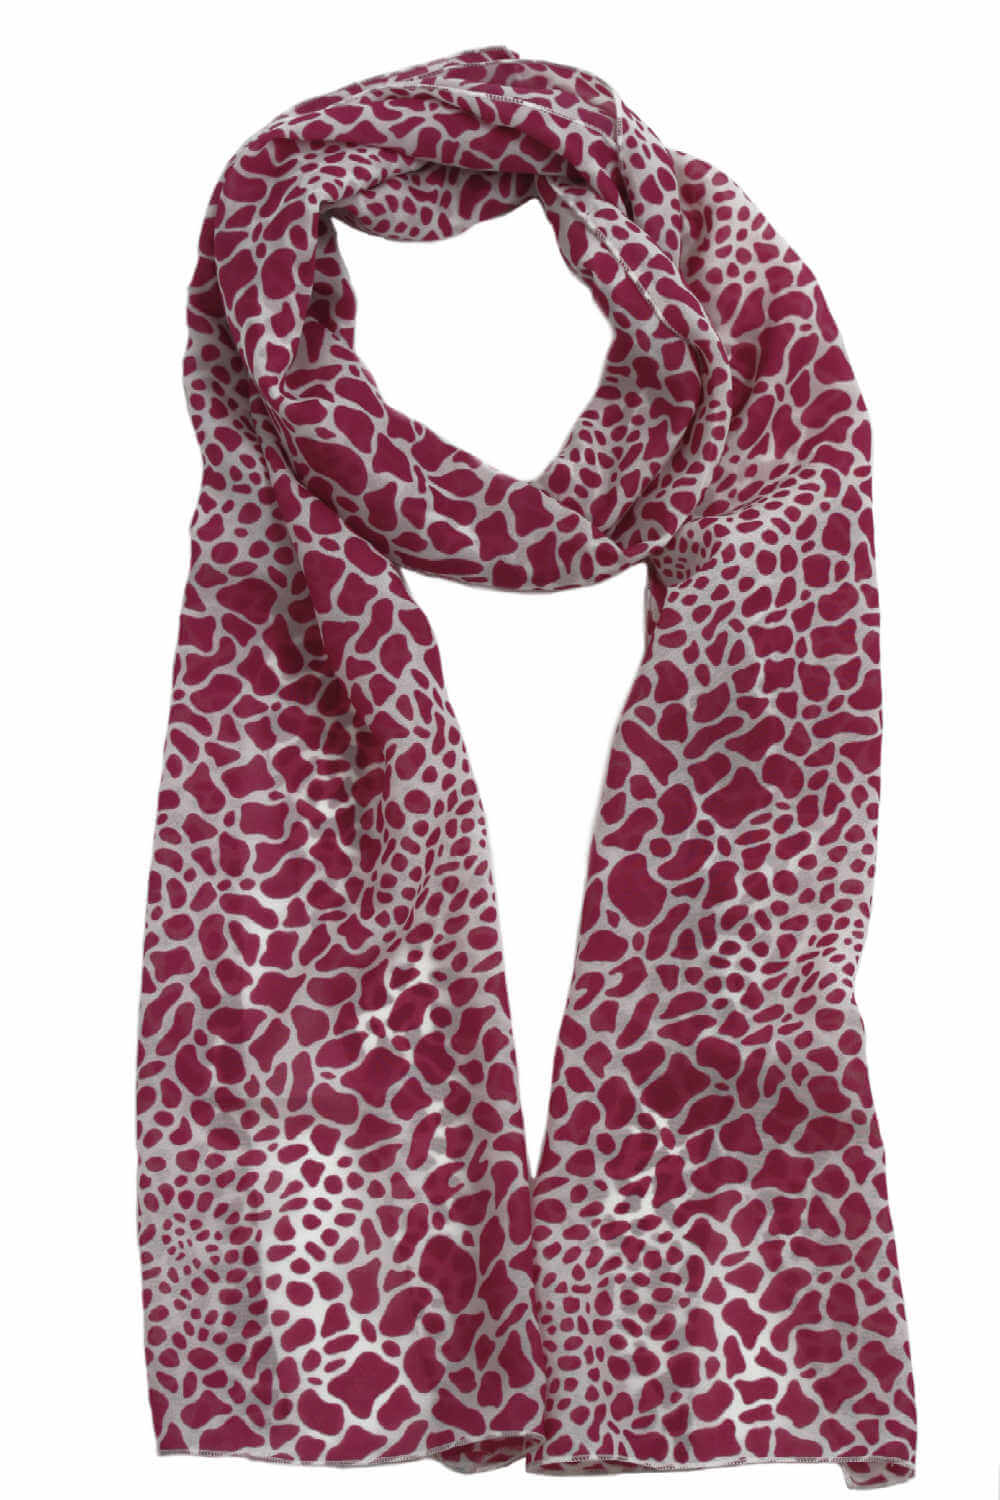 leopard-print-scarf-pink-rose-white